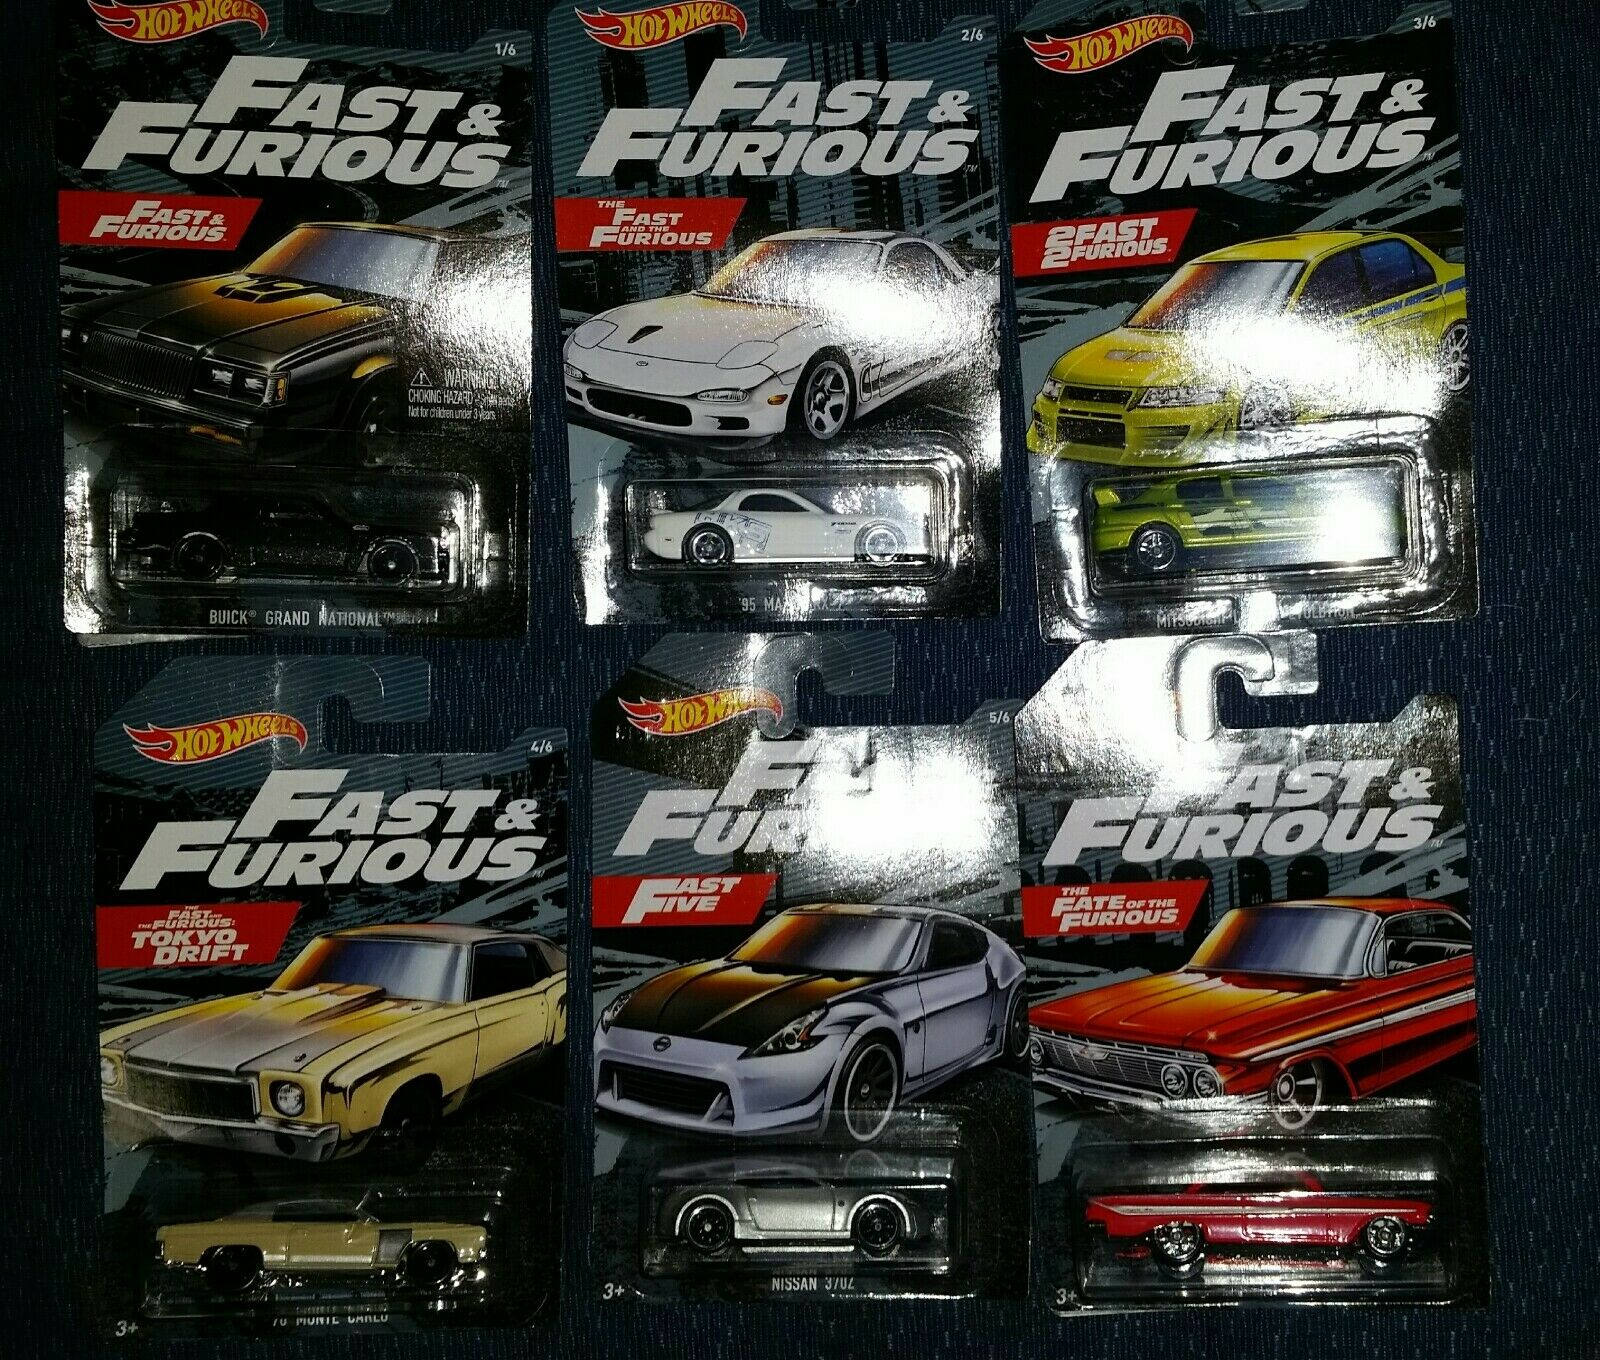 2019 Hot Wheels Fast And Furious Walmart exclusive 10 Car Case